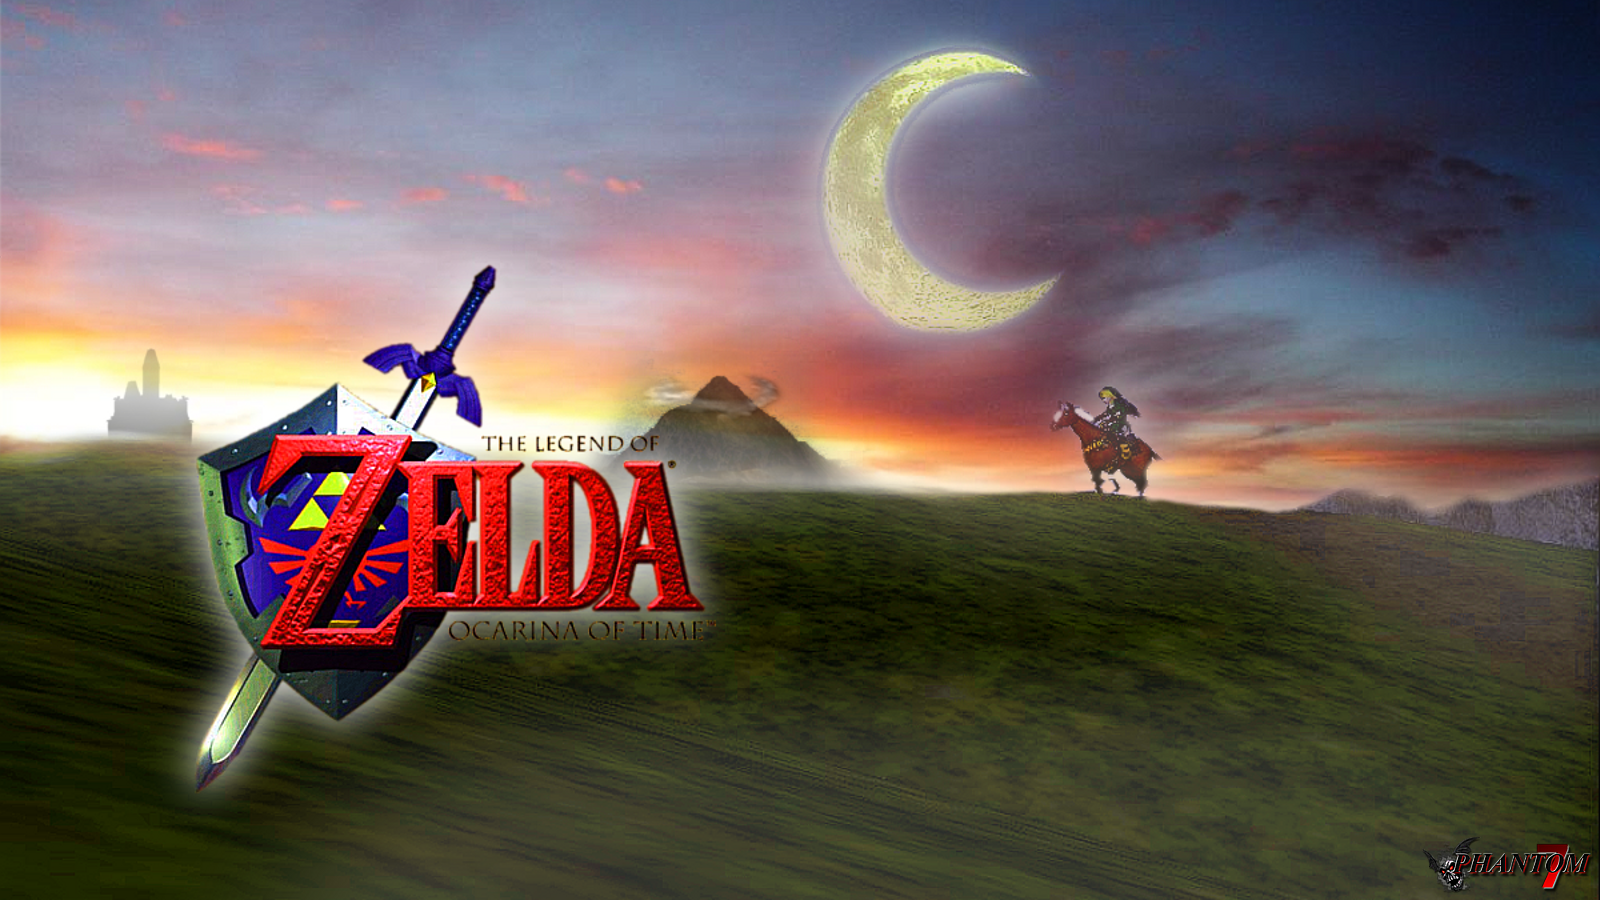 Ocarina Of Time Wallpapers Top Free Ocarina Of Time